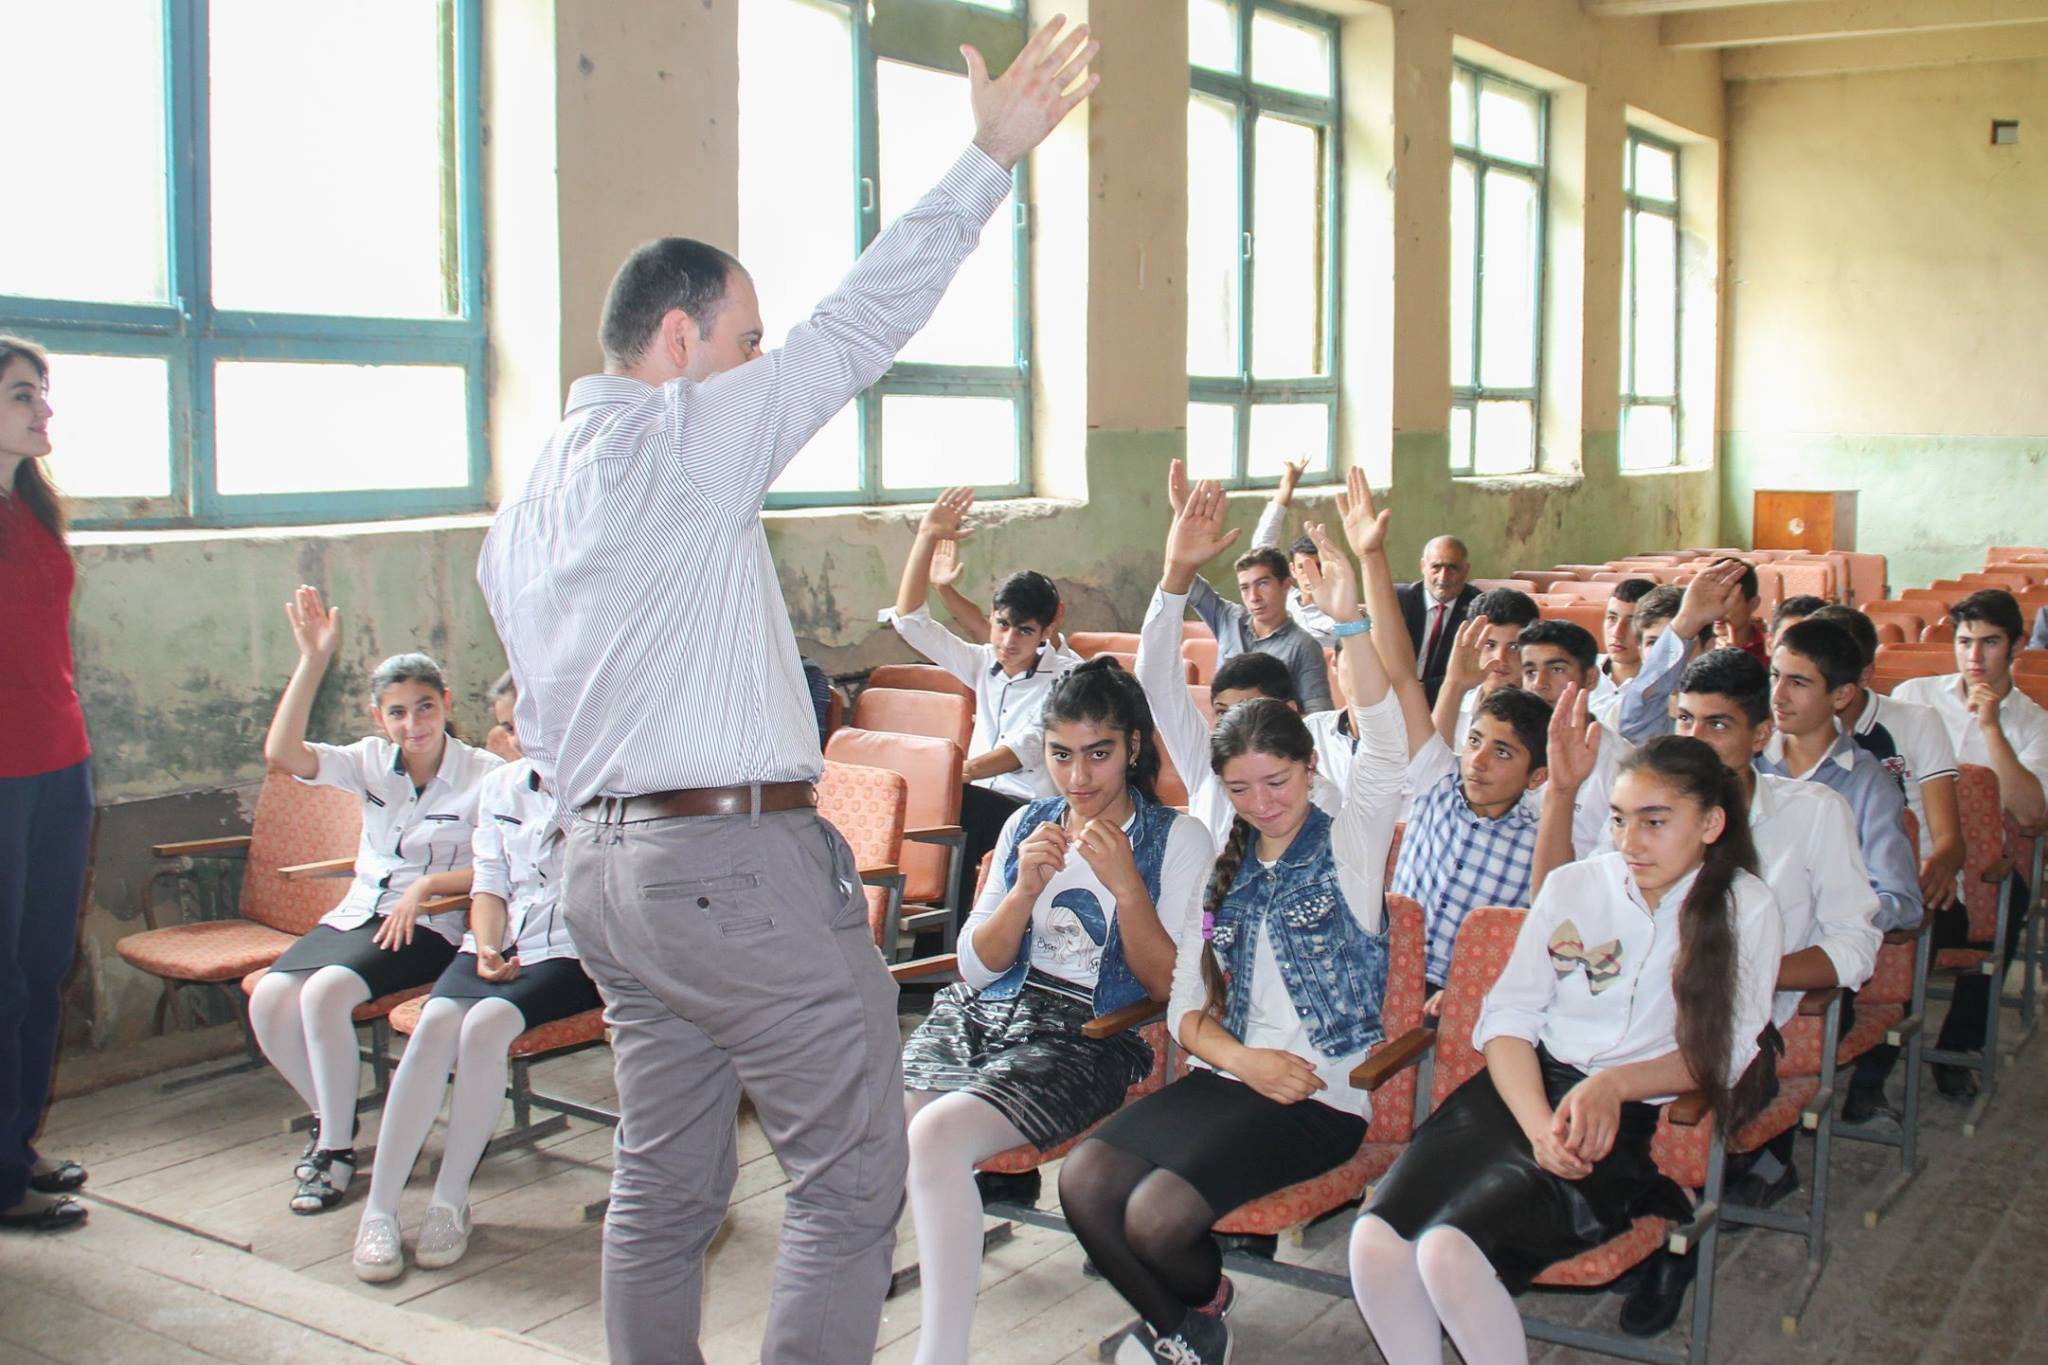 Department Chair Visits Schools on Front Lines